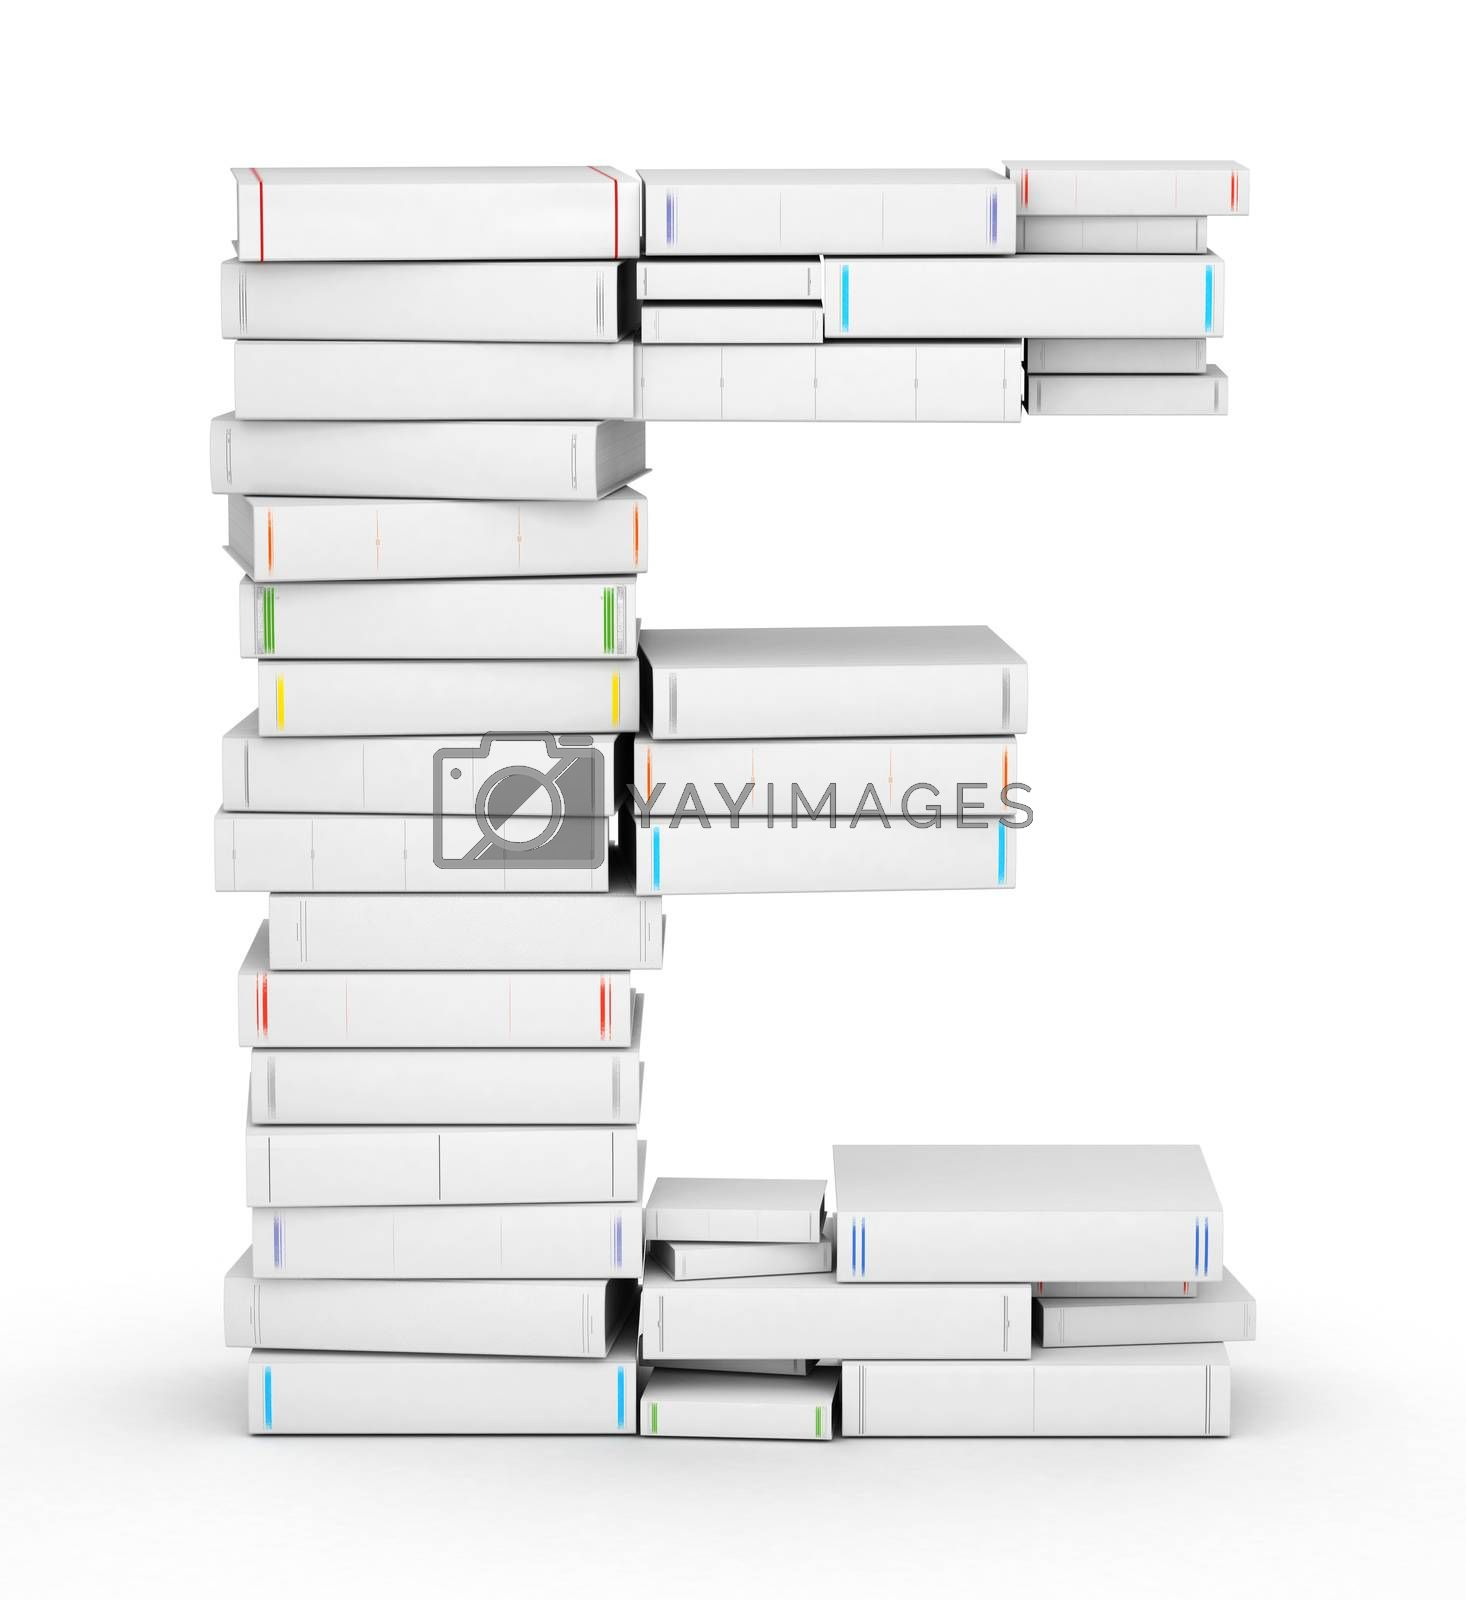 Royalty free image of Letter E, stacked from blank books by iunewind